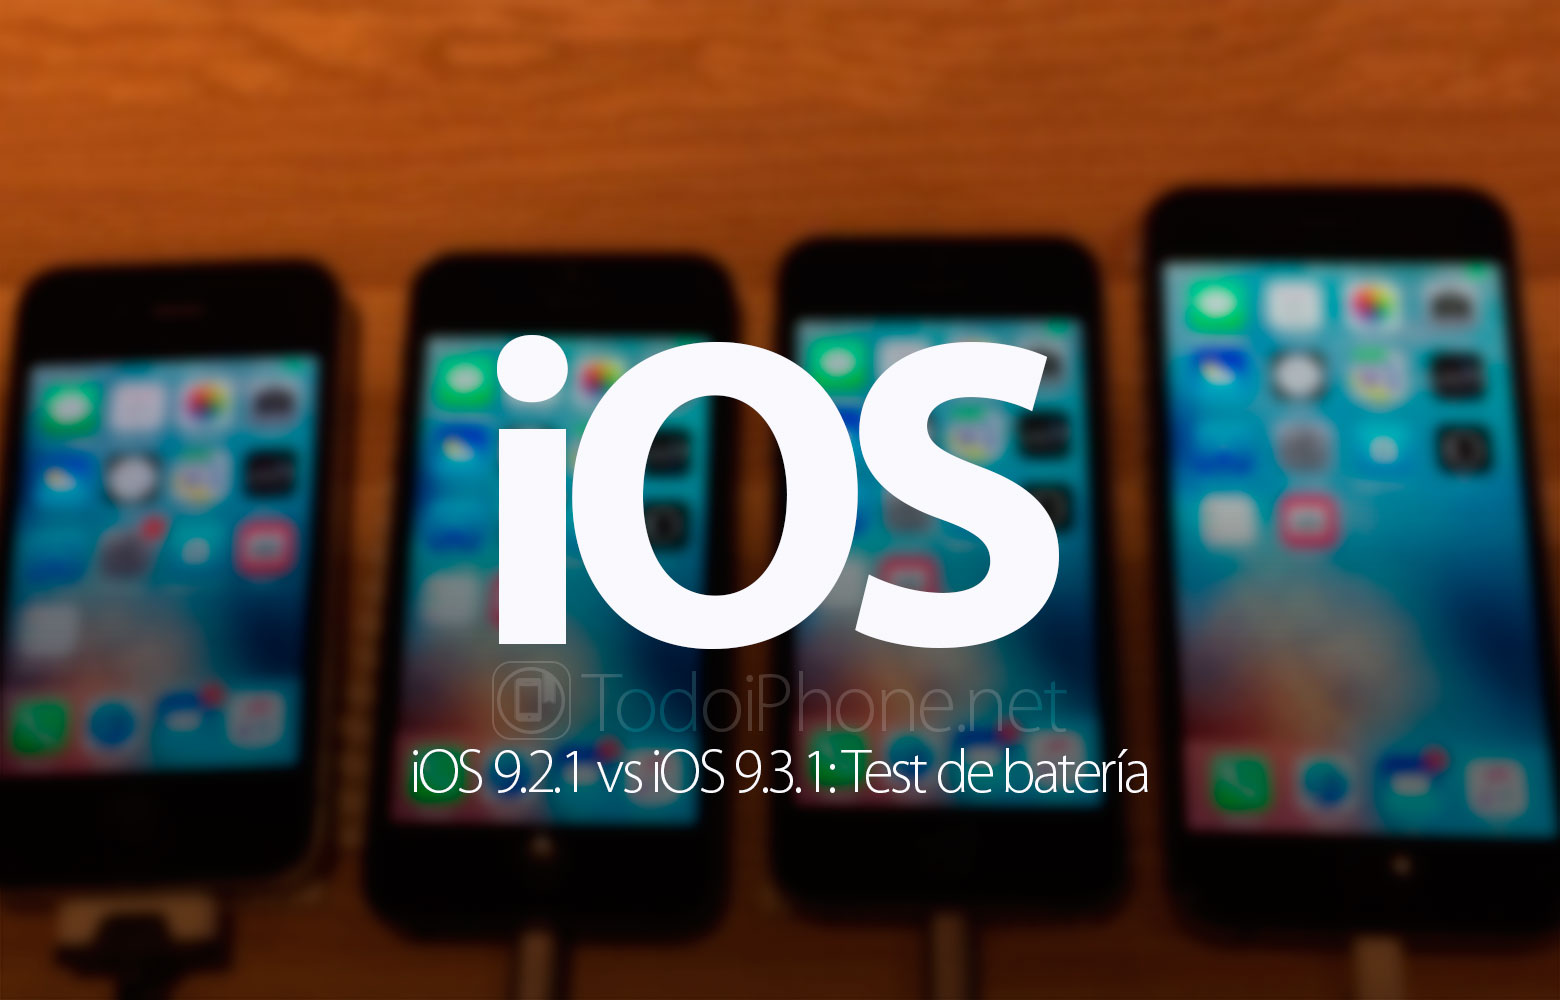 ios-9-2-1-vs-ios-9-3-1-test-bateria